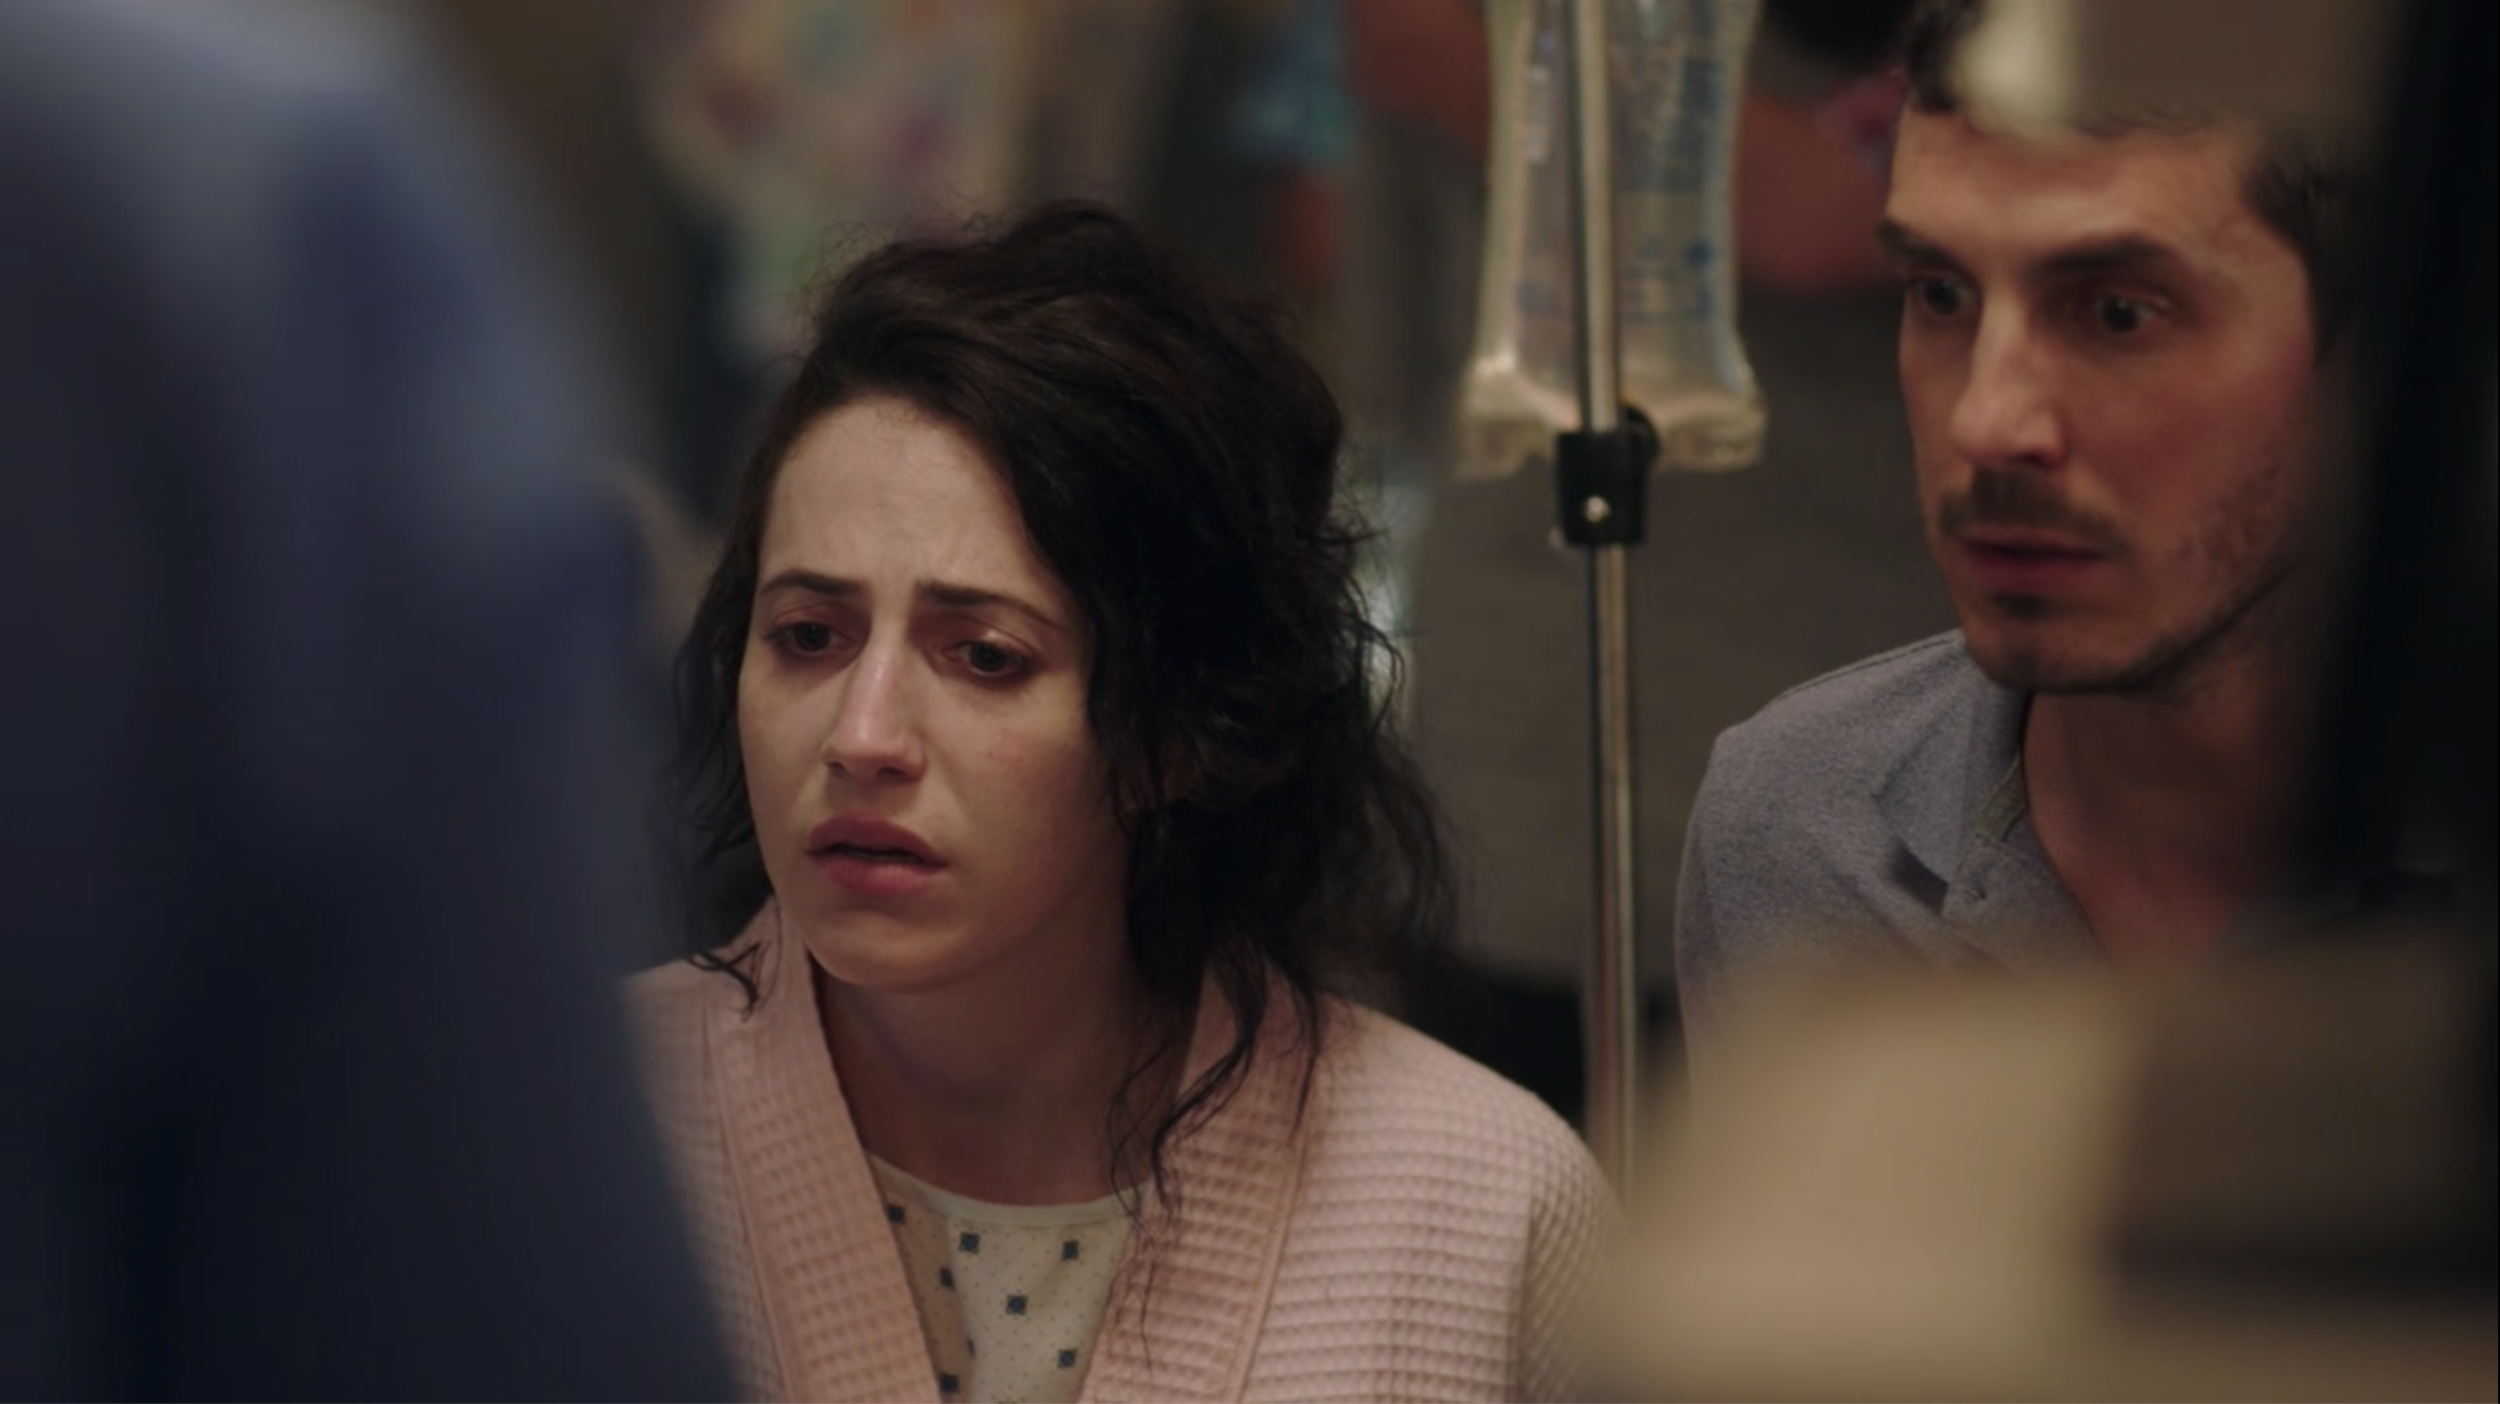 Adrienne_Whitney_Papp_The_ Resident_AdrienneWhitneyPapp_TheResident_S2E1_15.png